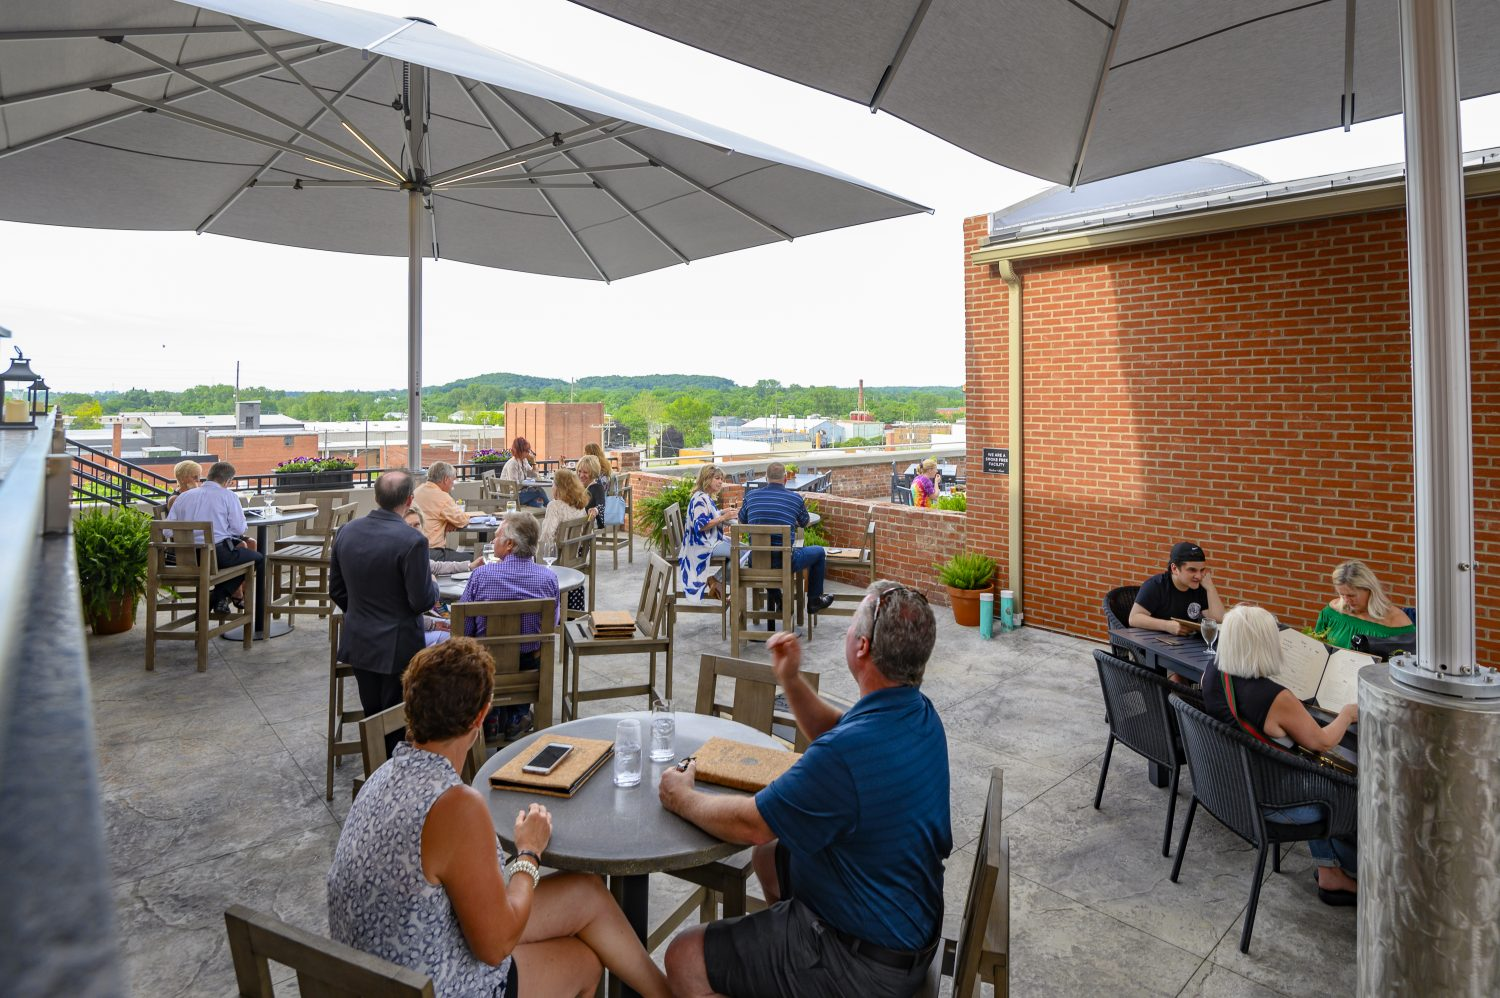 Live Music: Ricky Mitchell – On The Patio (Weather Permitting)